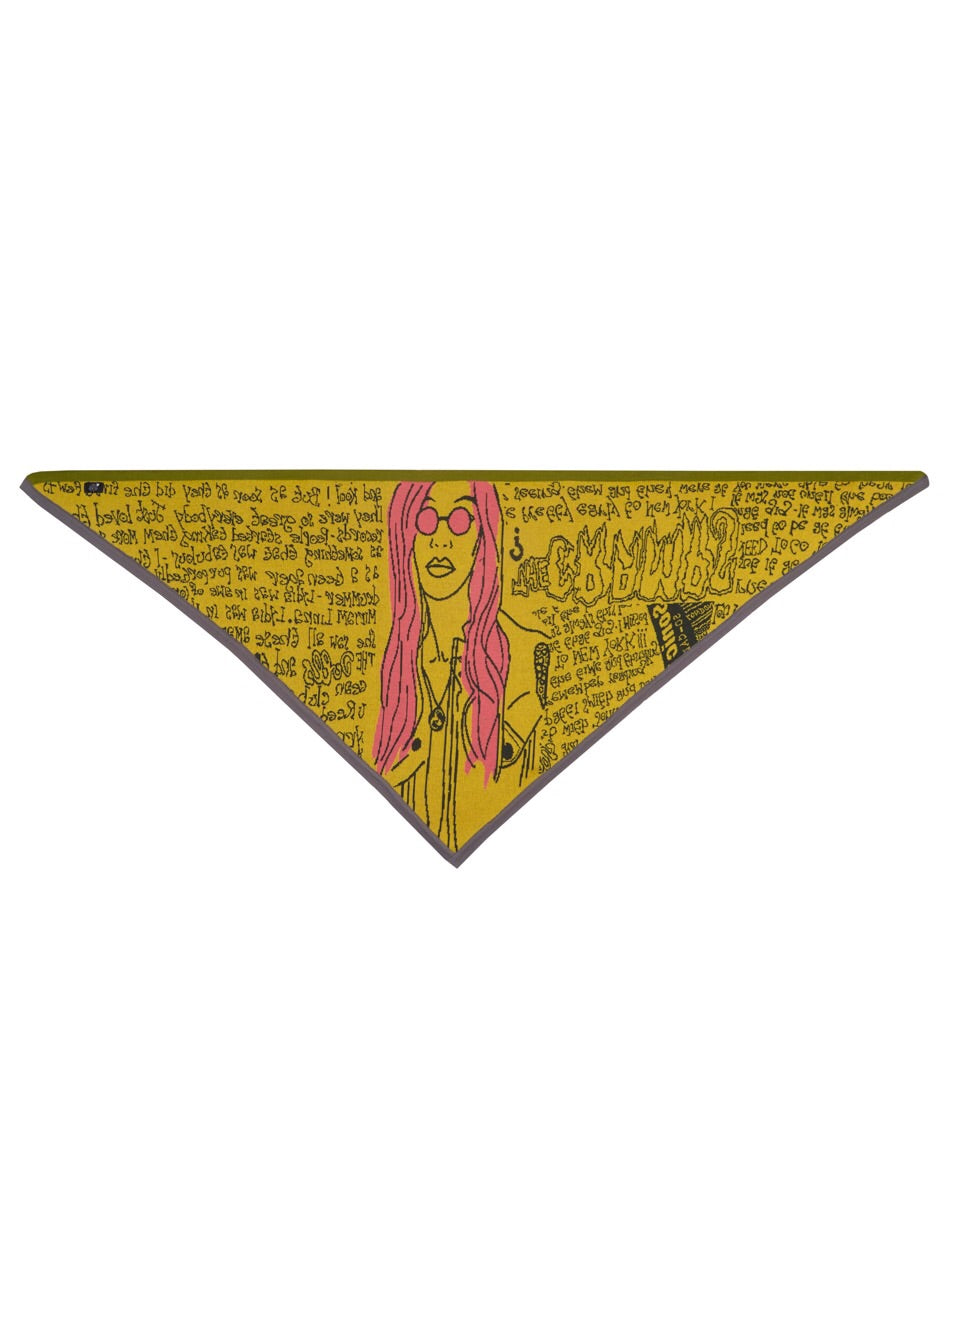 SOLD OUT - Stone Age Zine Triangle Scarf {oversized}